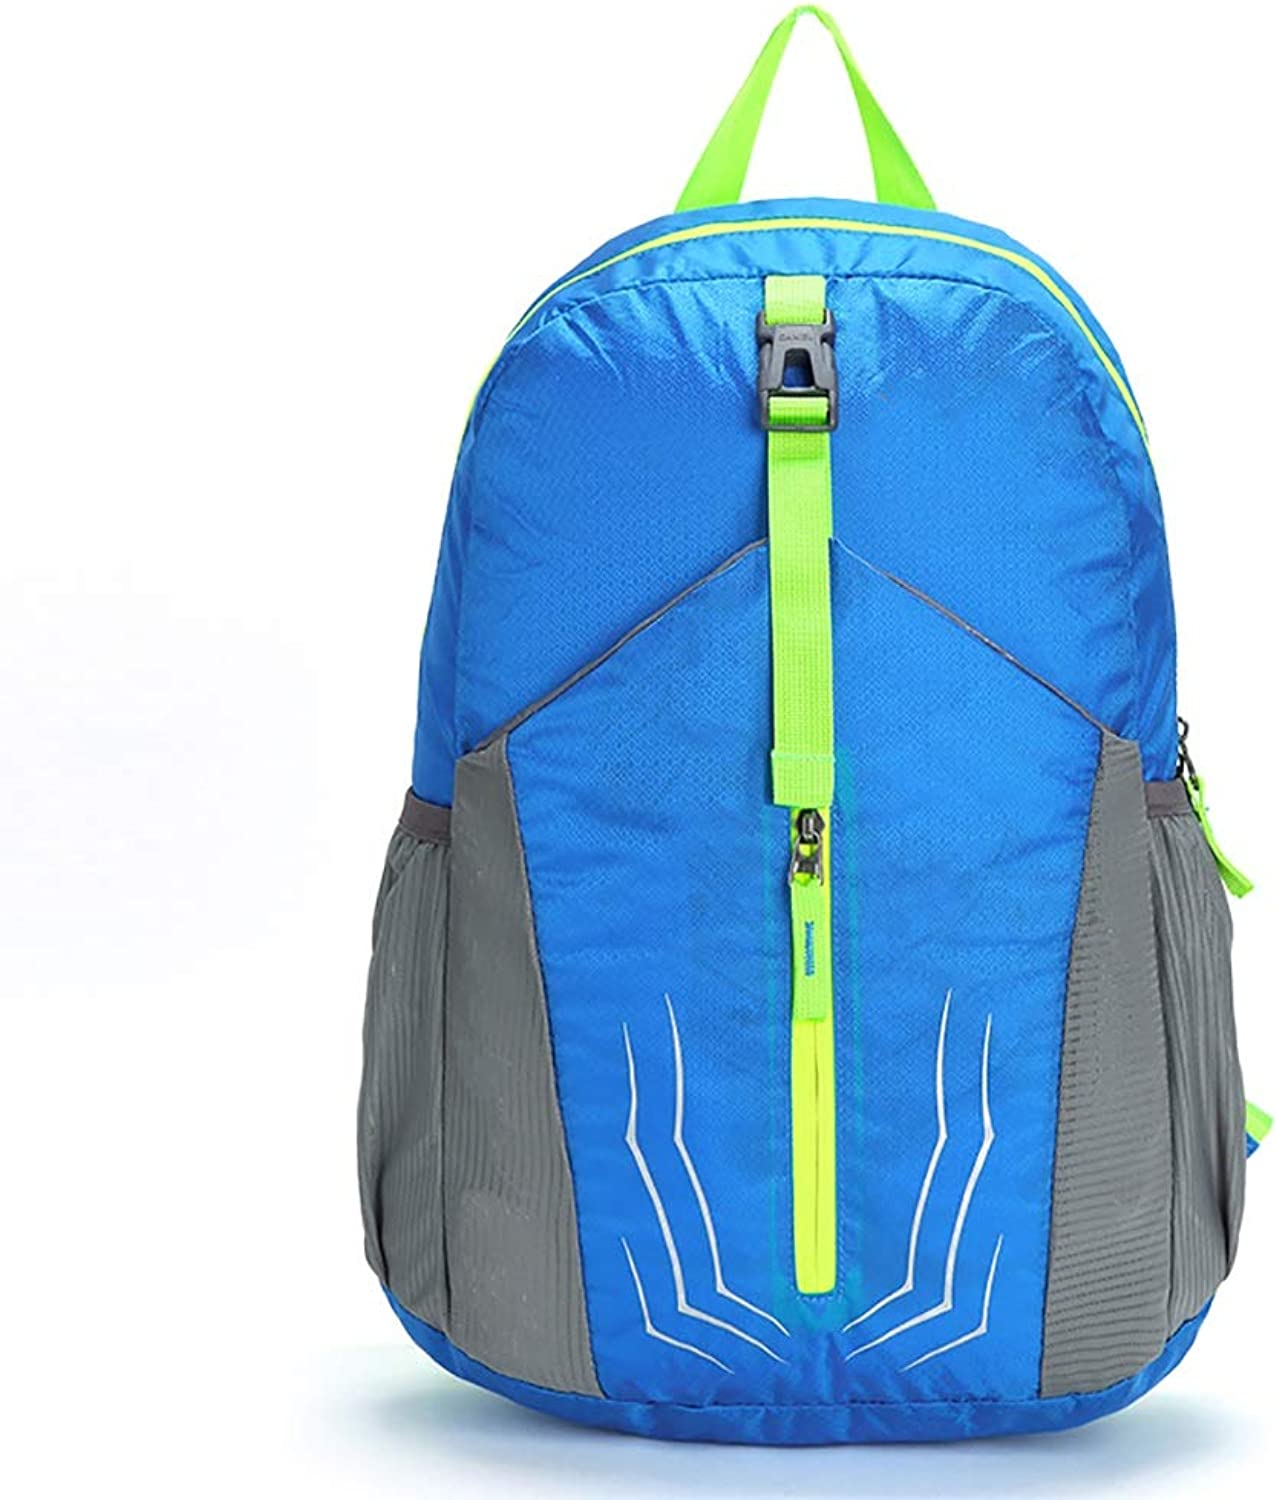 Lightweight Travel Hiking Backpack Daypack 20L Camping Backpack Ultralight Outdoor Sport Backpack blueee